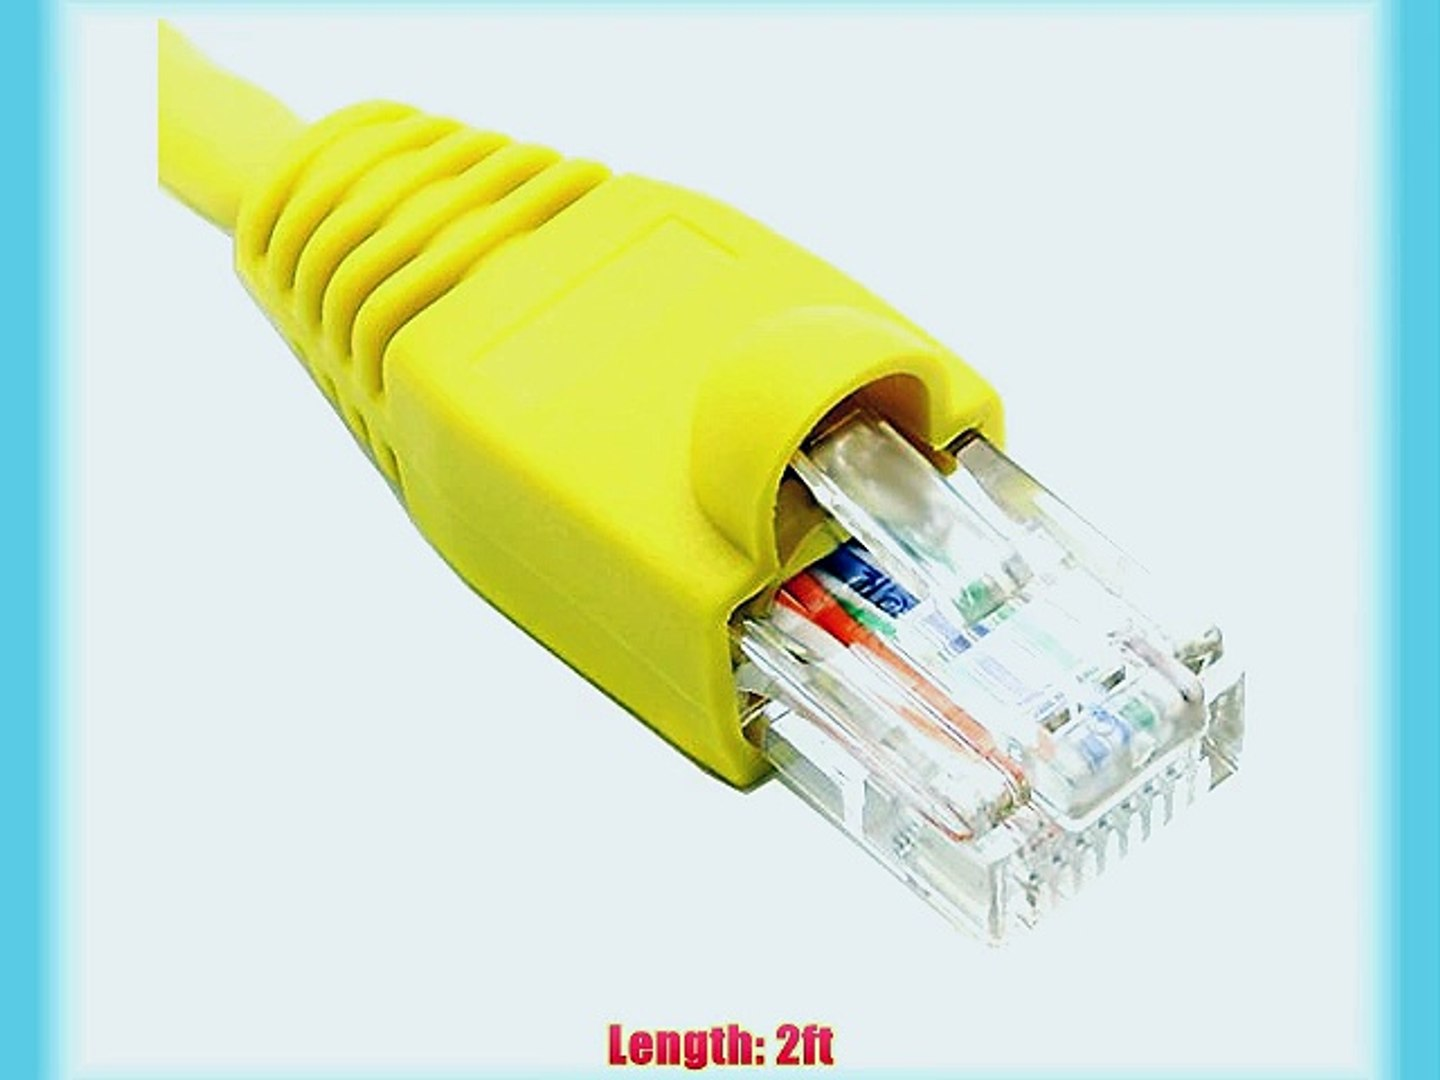 2FT Cat6 Yellow Ethernet Network Patch Cable RJ45 Lan Wire 2 Feet 25 Pack